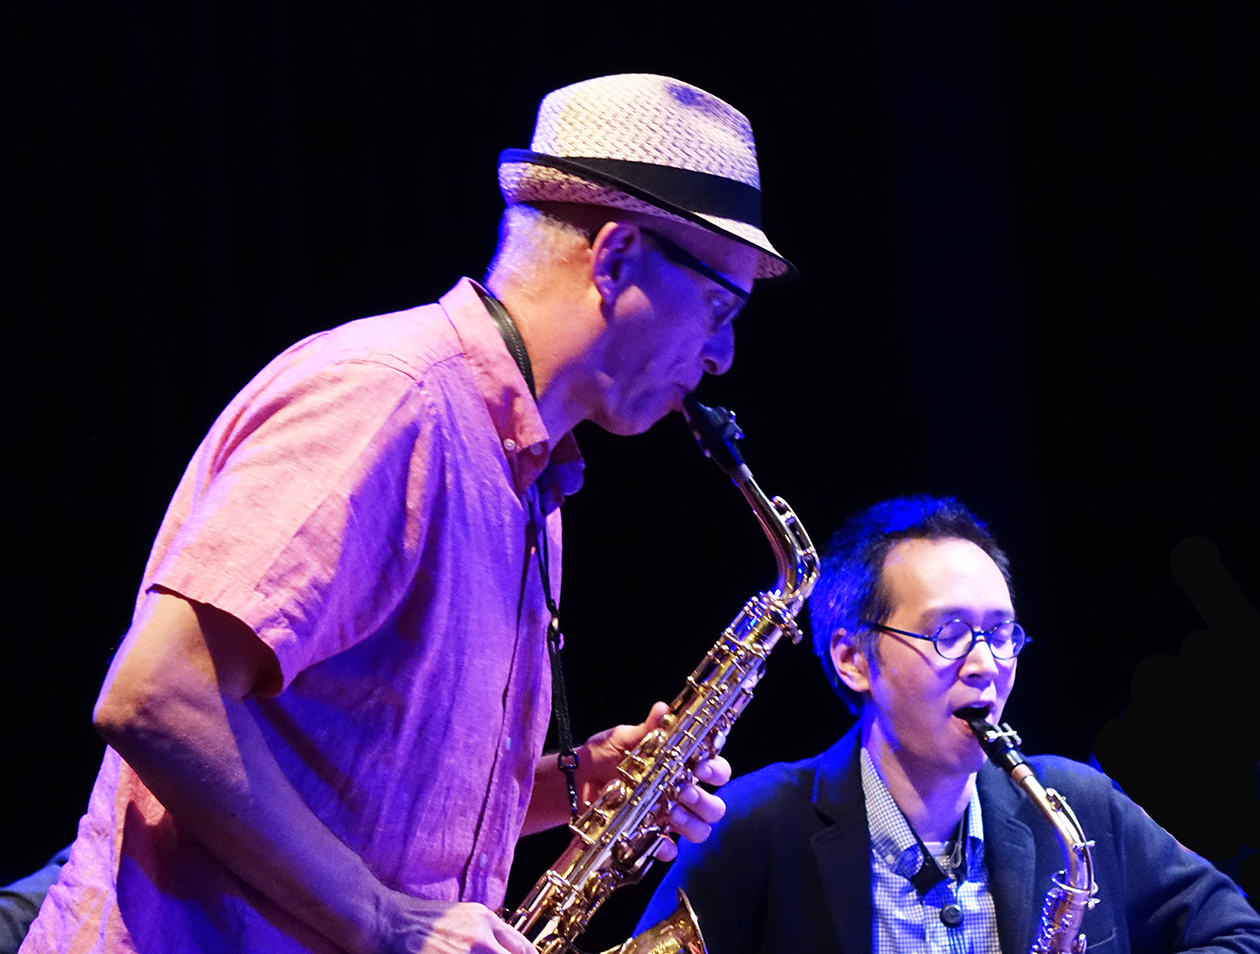 Michael Moore and James Fei at Doek Festival 2015